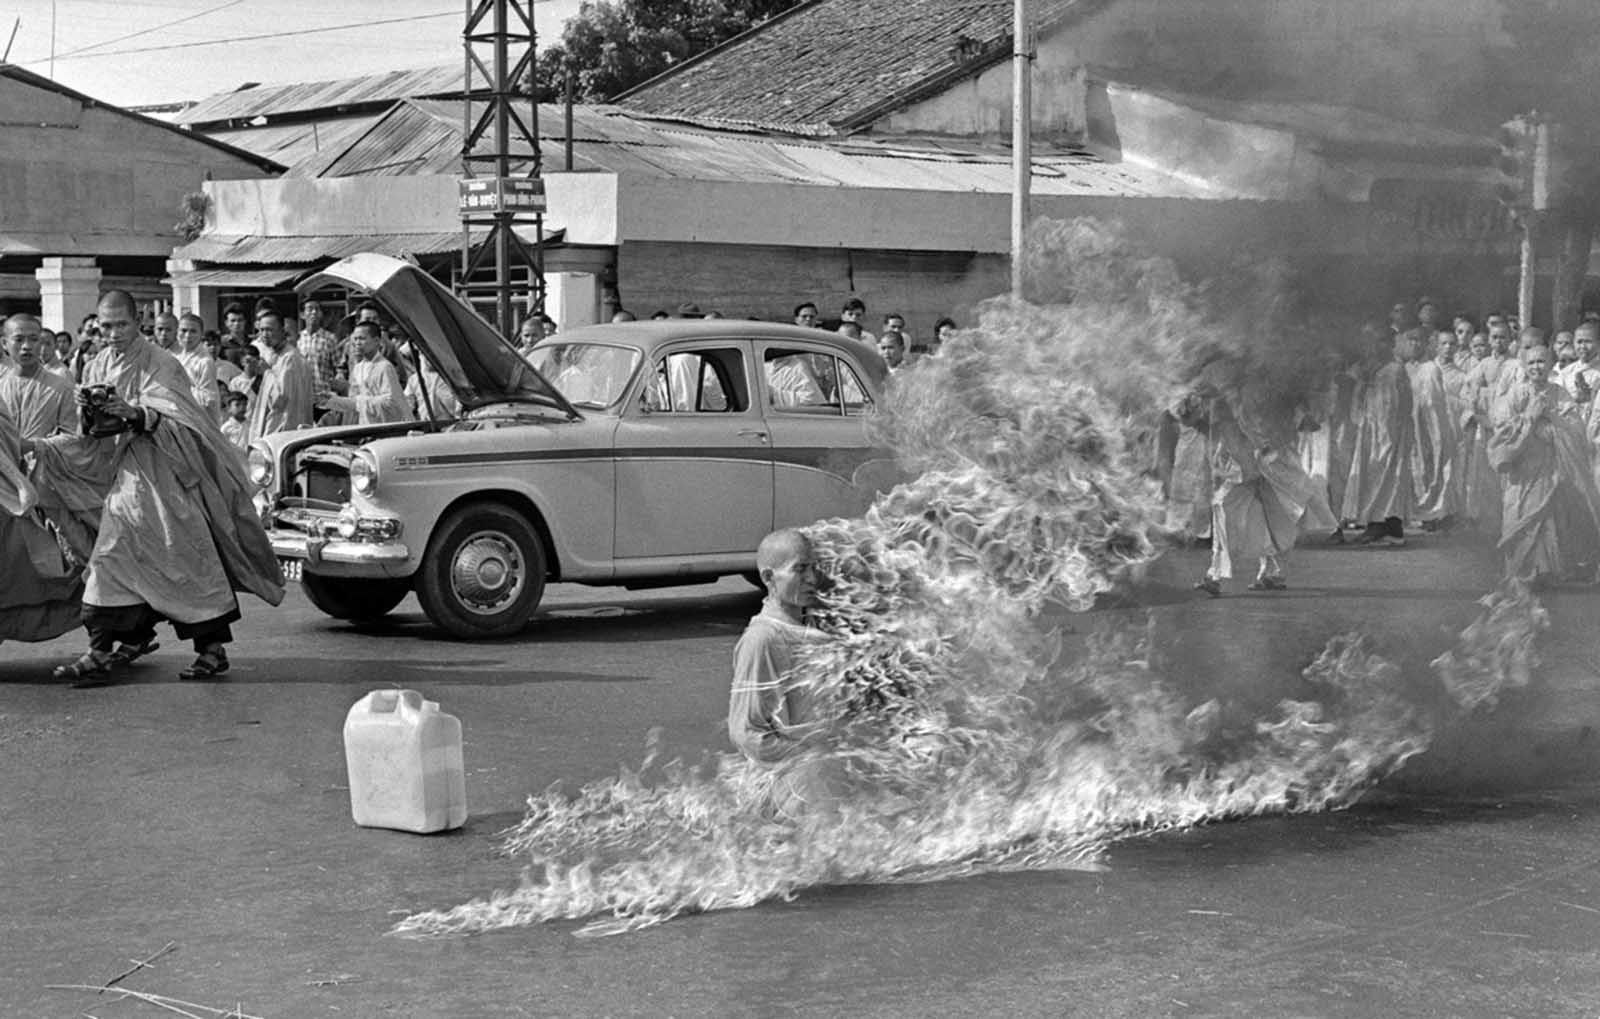 Thich Quang Duc, a Buddhist monk, burns himself to death on a Saigon street on June 11, 1963, to protest alleged persecution of Buddhists by the South Vietnamese government. President Ngo Dình Diem, part of the Catholic minority, had adopted policies that discriminated against Buddhists and gave high favor to Catholics.